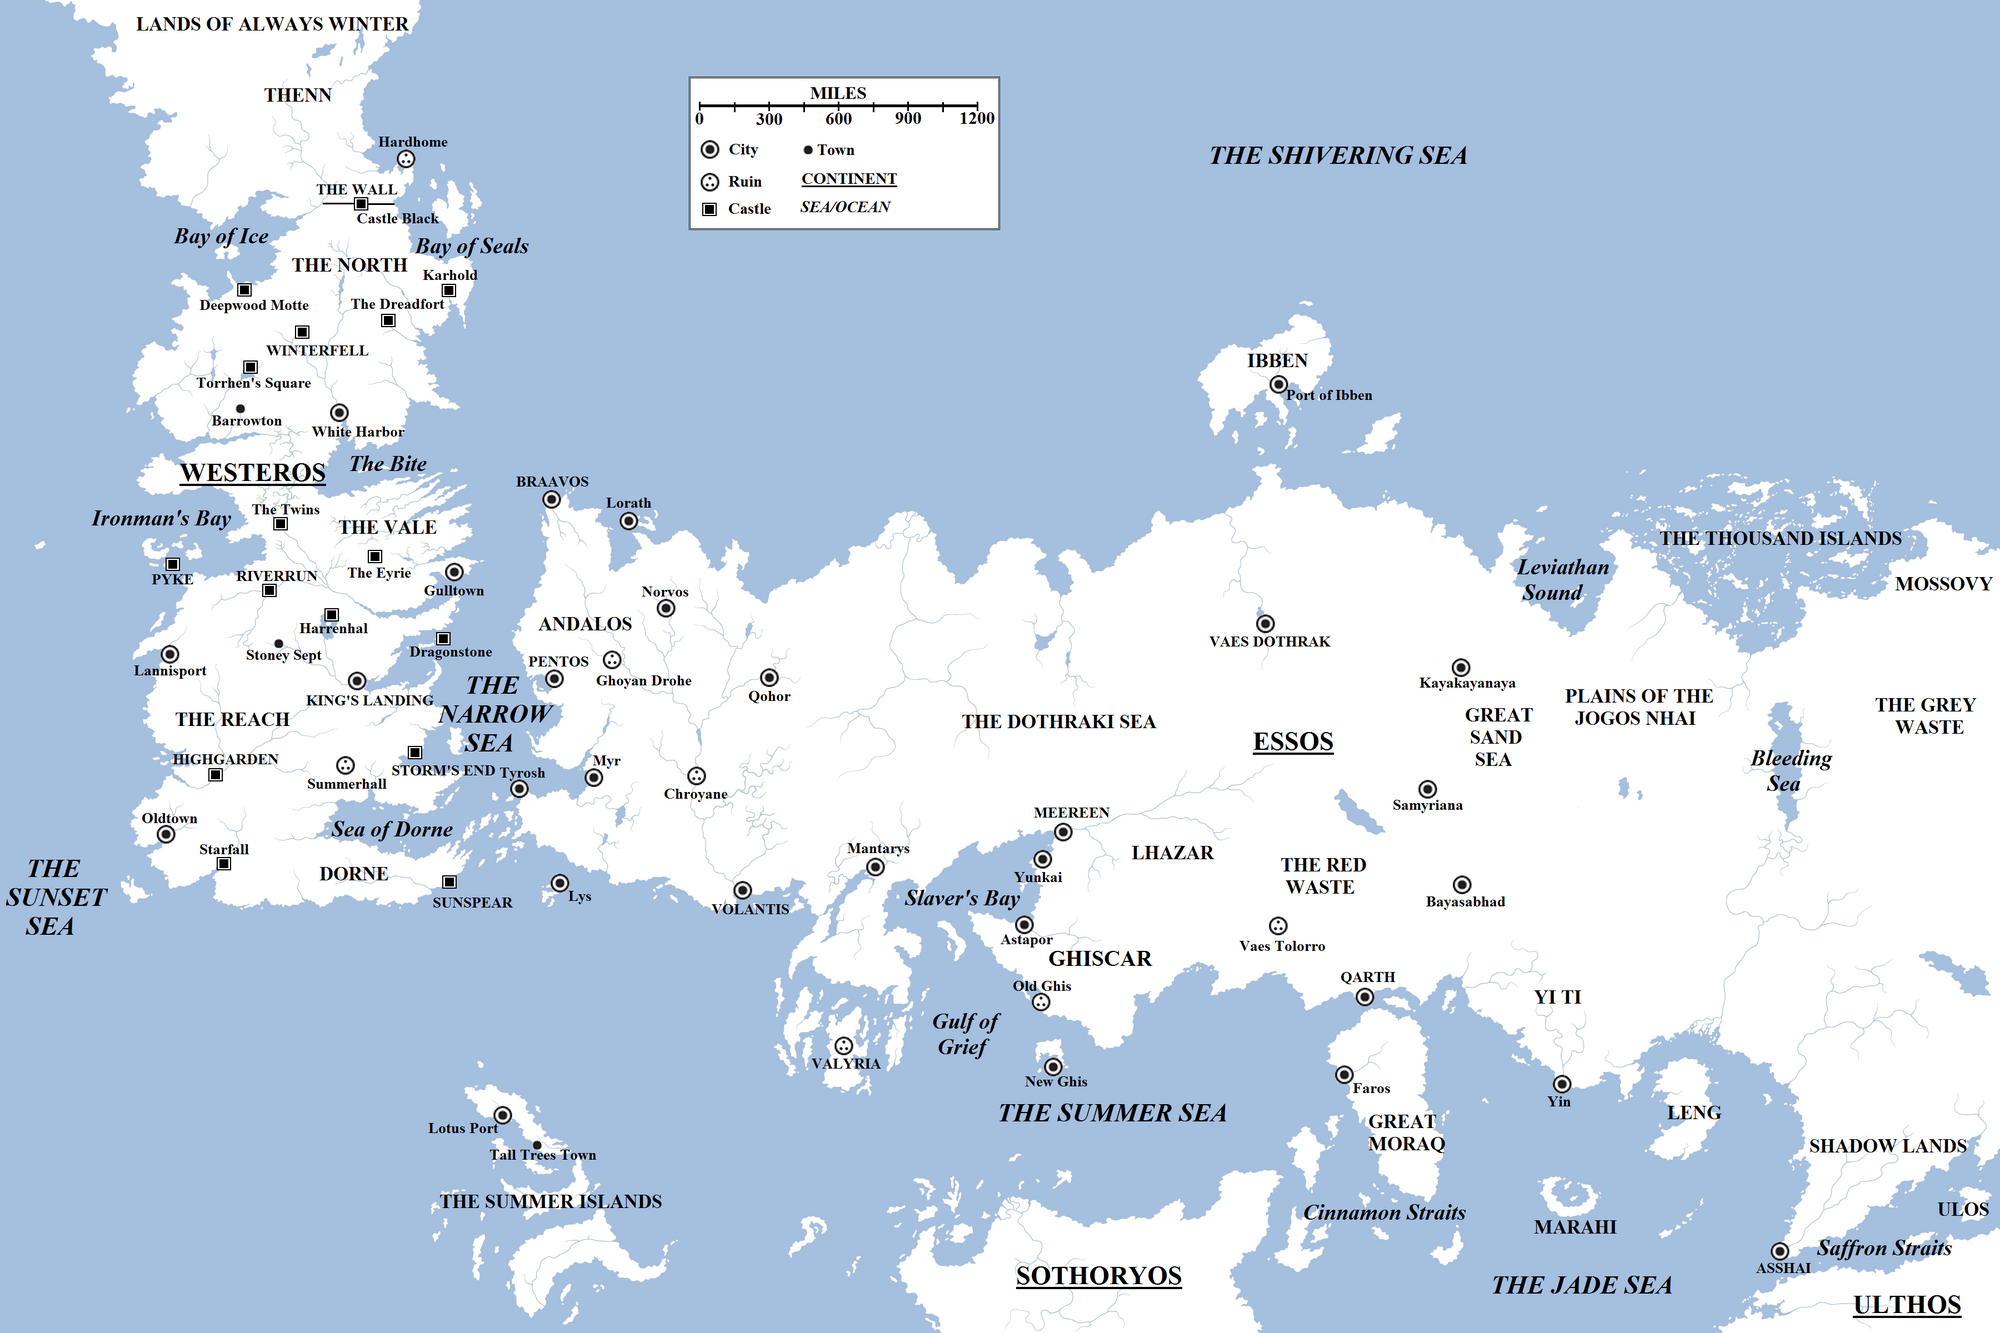 image  ice and fire world mappng  a song of ice and fire wiki  - image  ice and fire world mappng  a song of ice and fire wiki  fandompowered by wikia